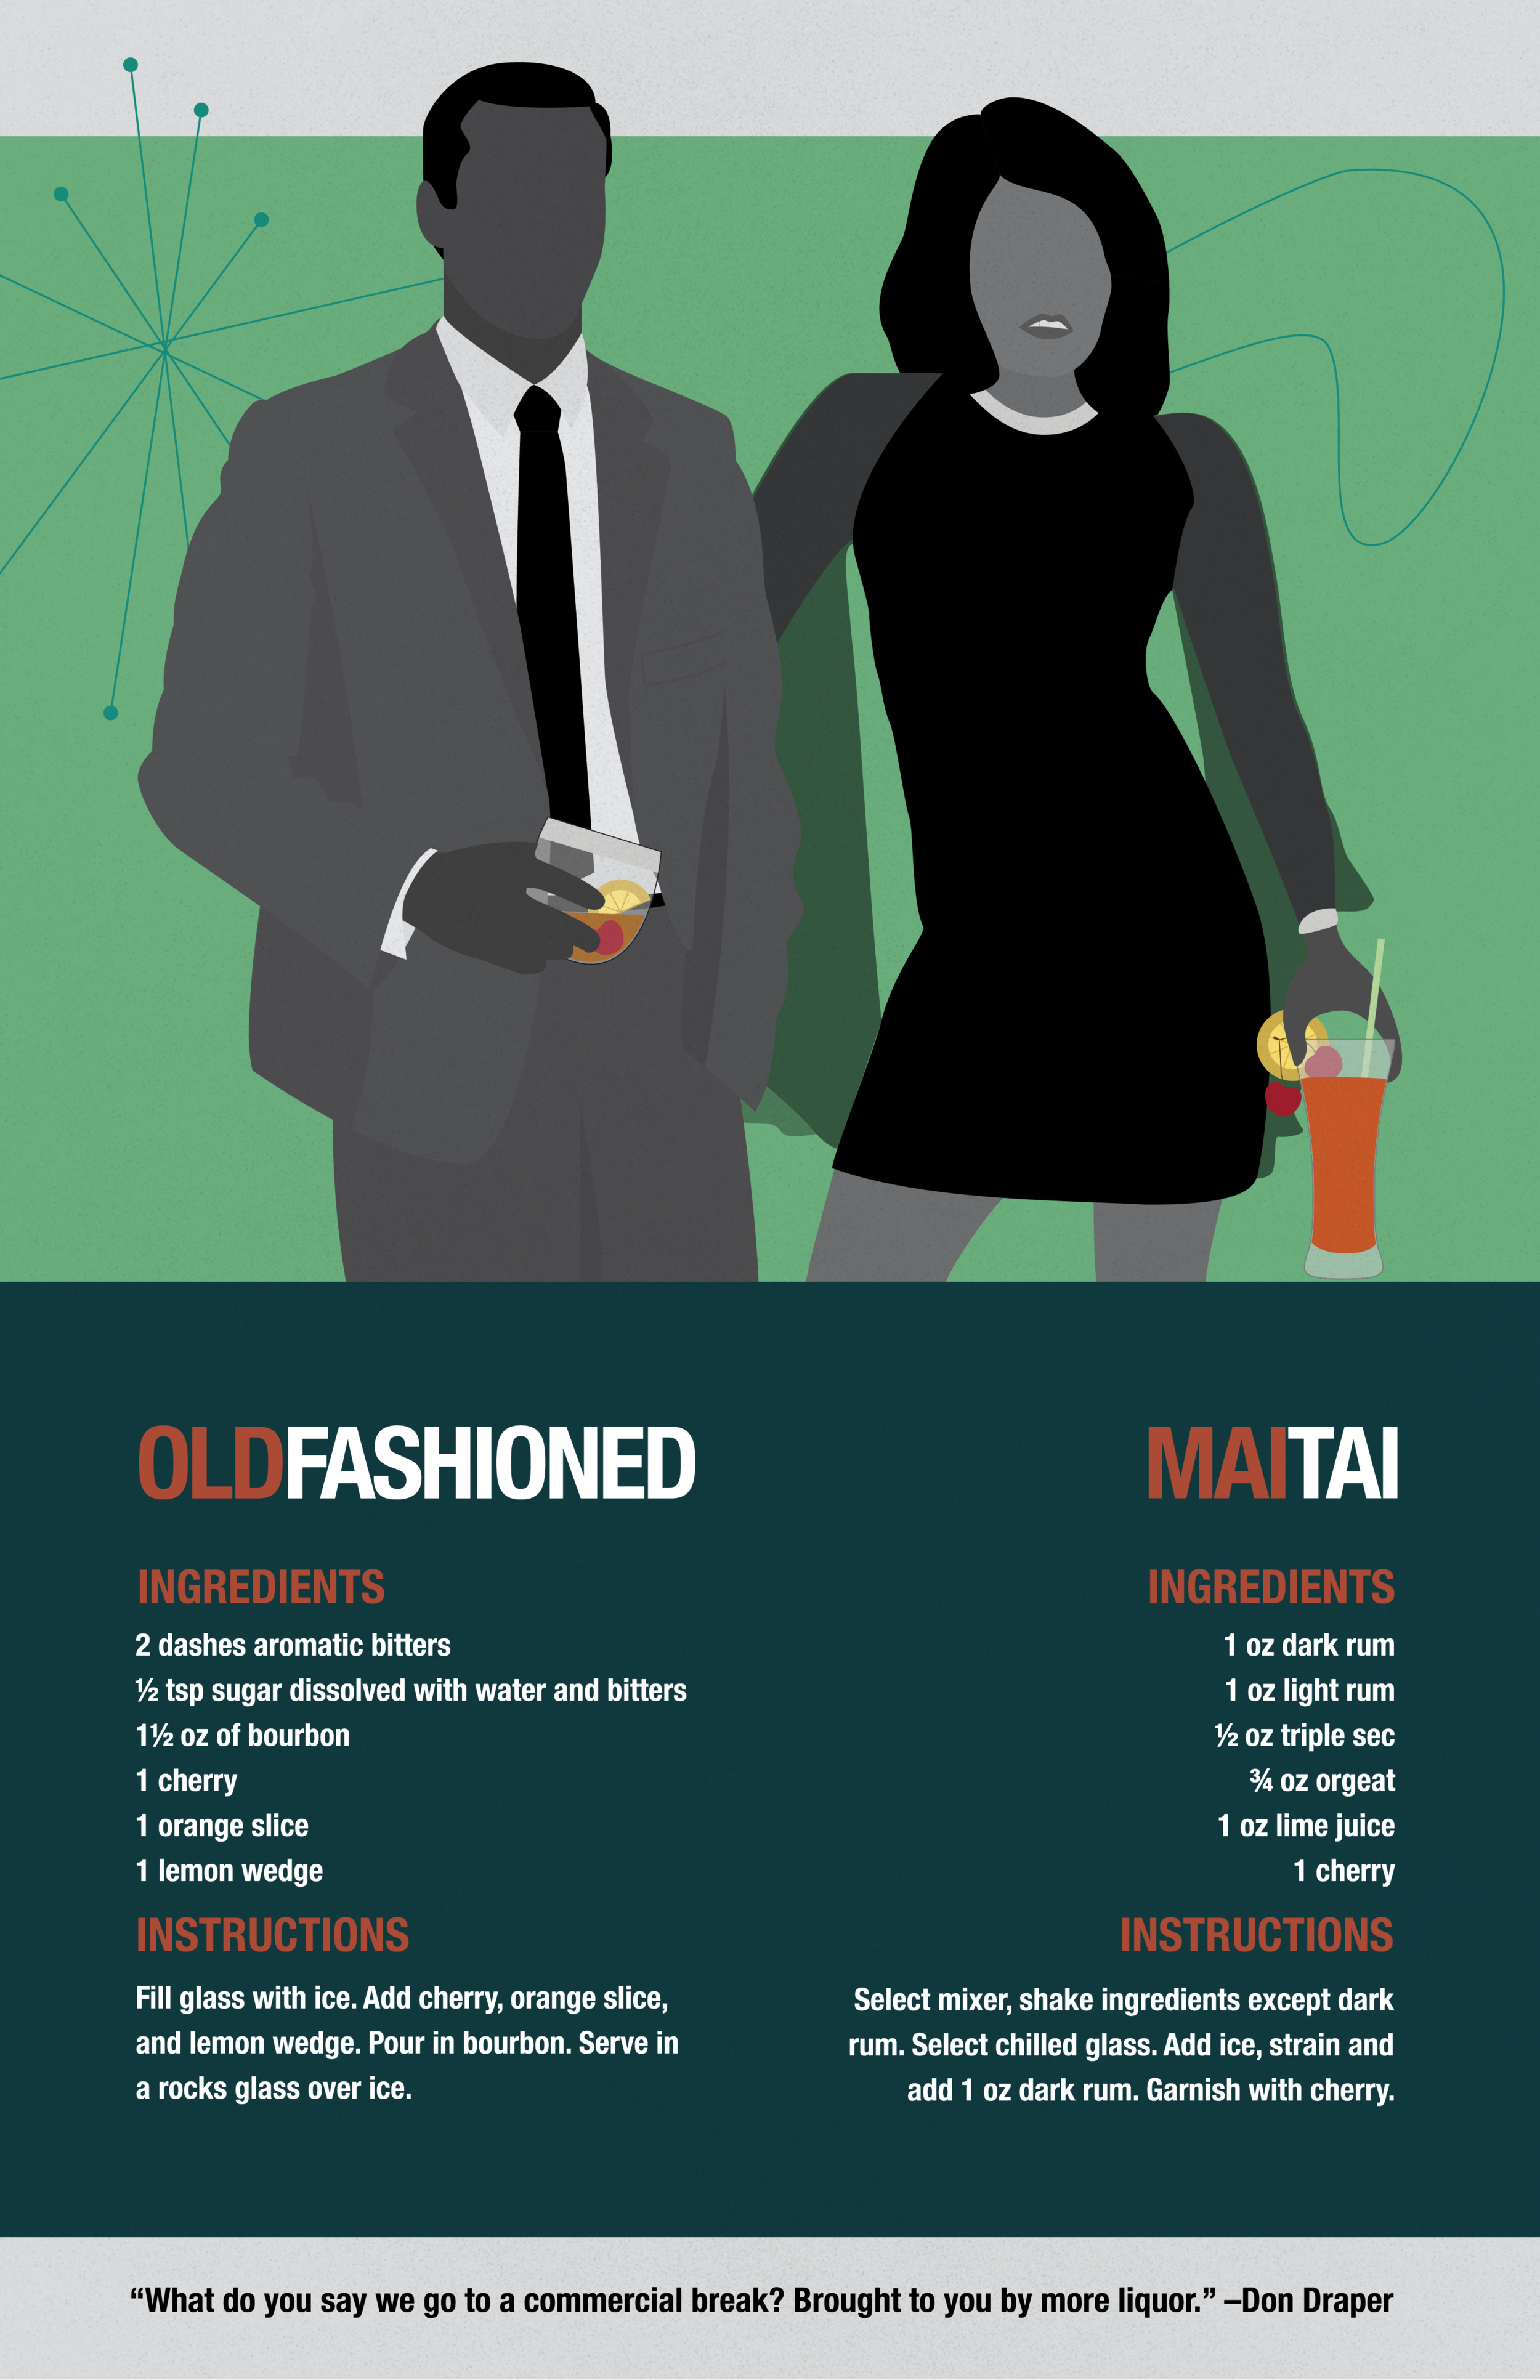 Mid-Century Modern inspired poster. Vector illustrations of characters from AMC's Mad Men.